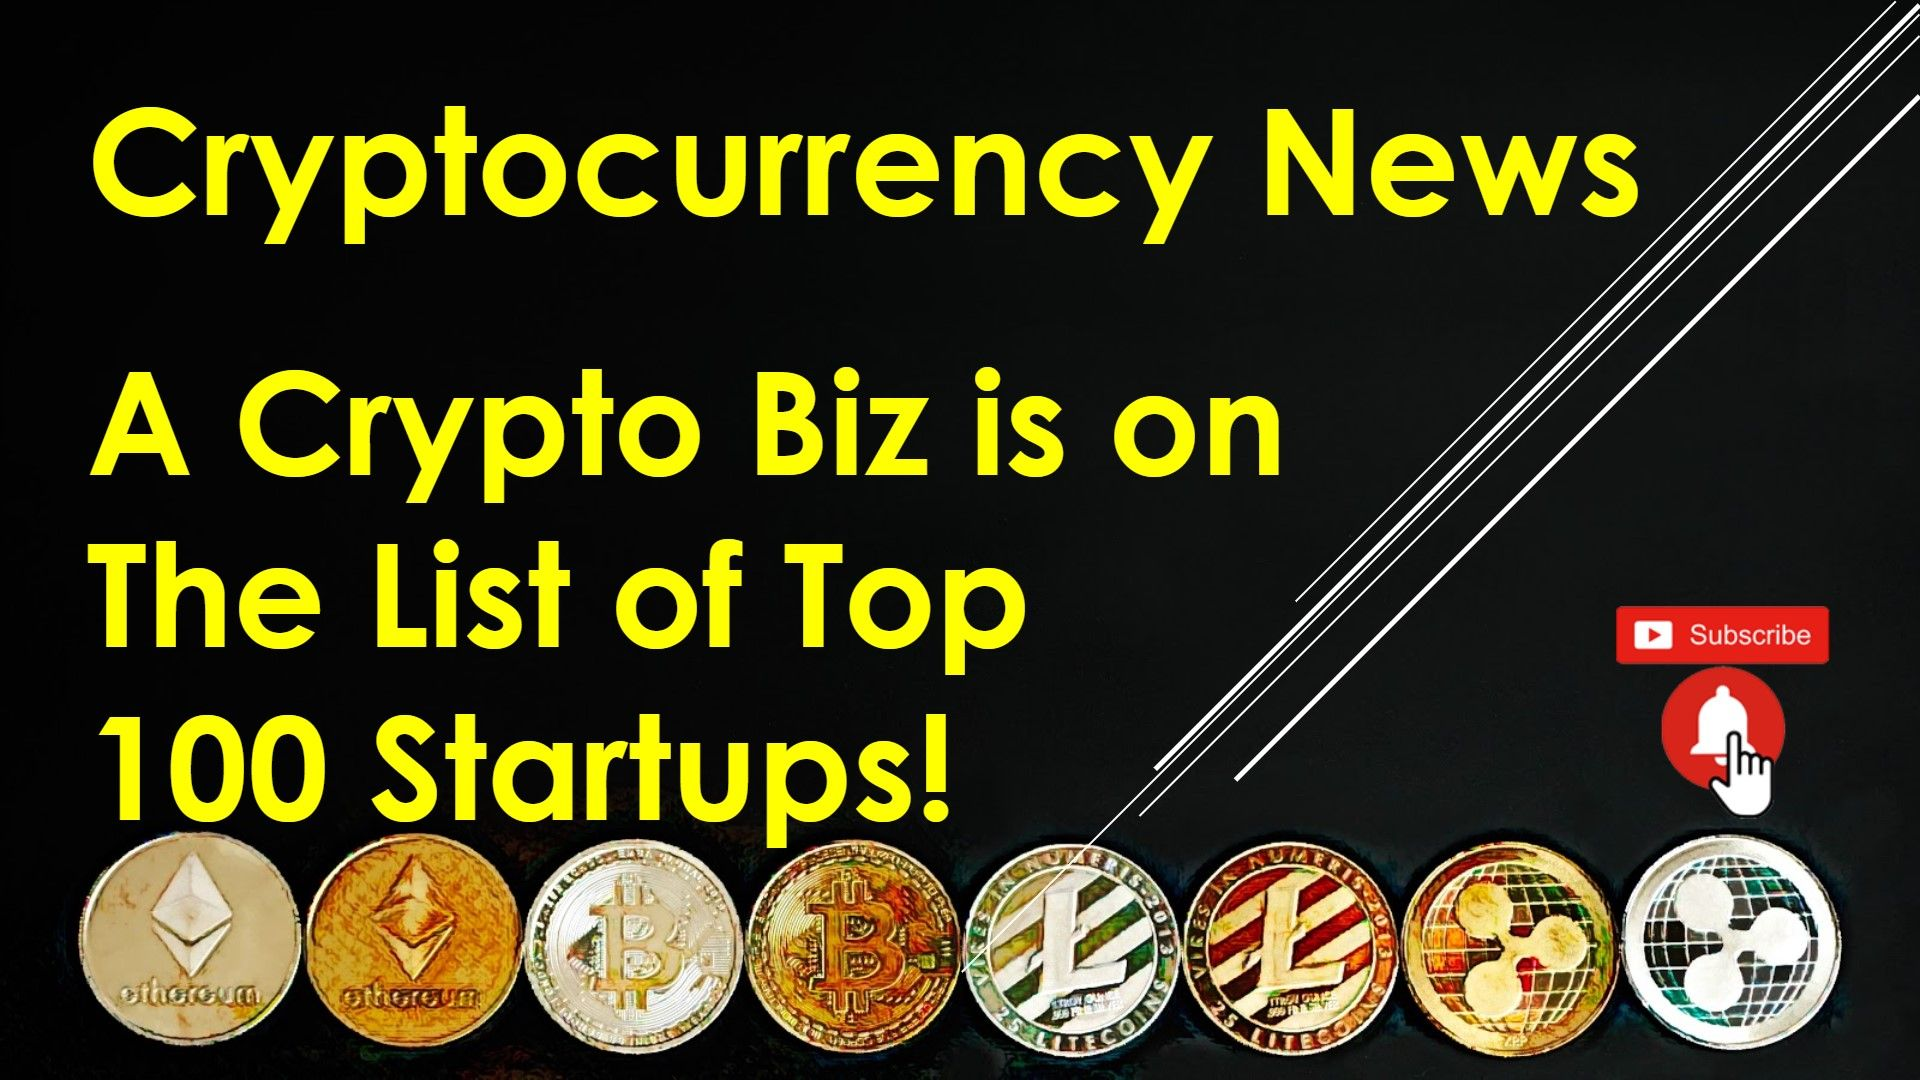 Cryptocurrency News A Crypto Biz Is On The List Of Top 100 Startups Cryptocurrency News Cryptocurrency Bitcoin